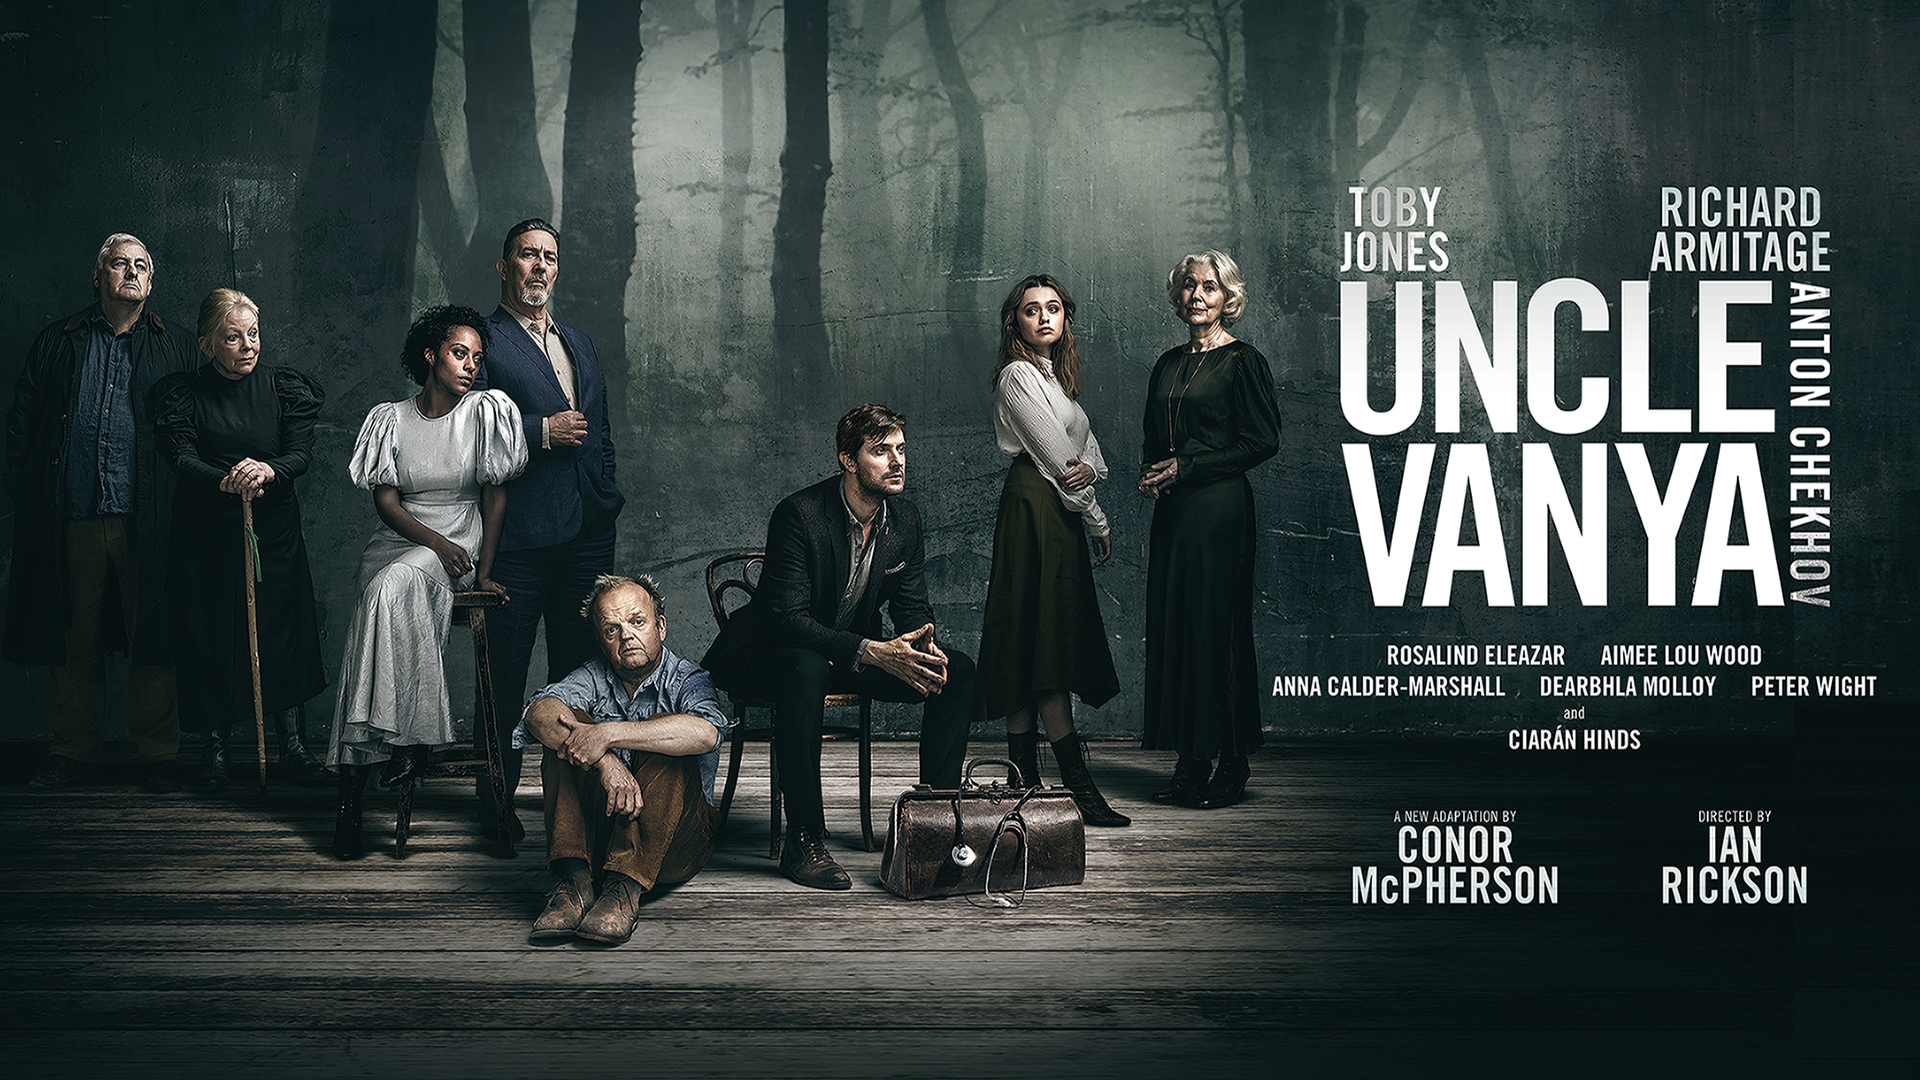 Title artwork for Uncle Vanya featuring Toby Jones, Richard Armitage, Ciaran Hinds, Rosalind Eleazar, Aimee Lou Wood